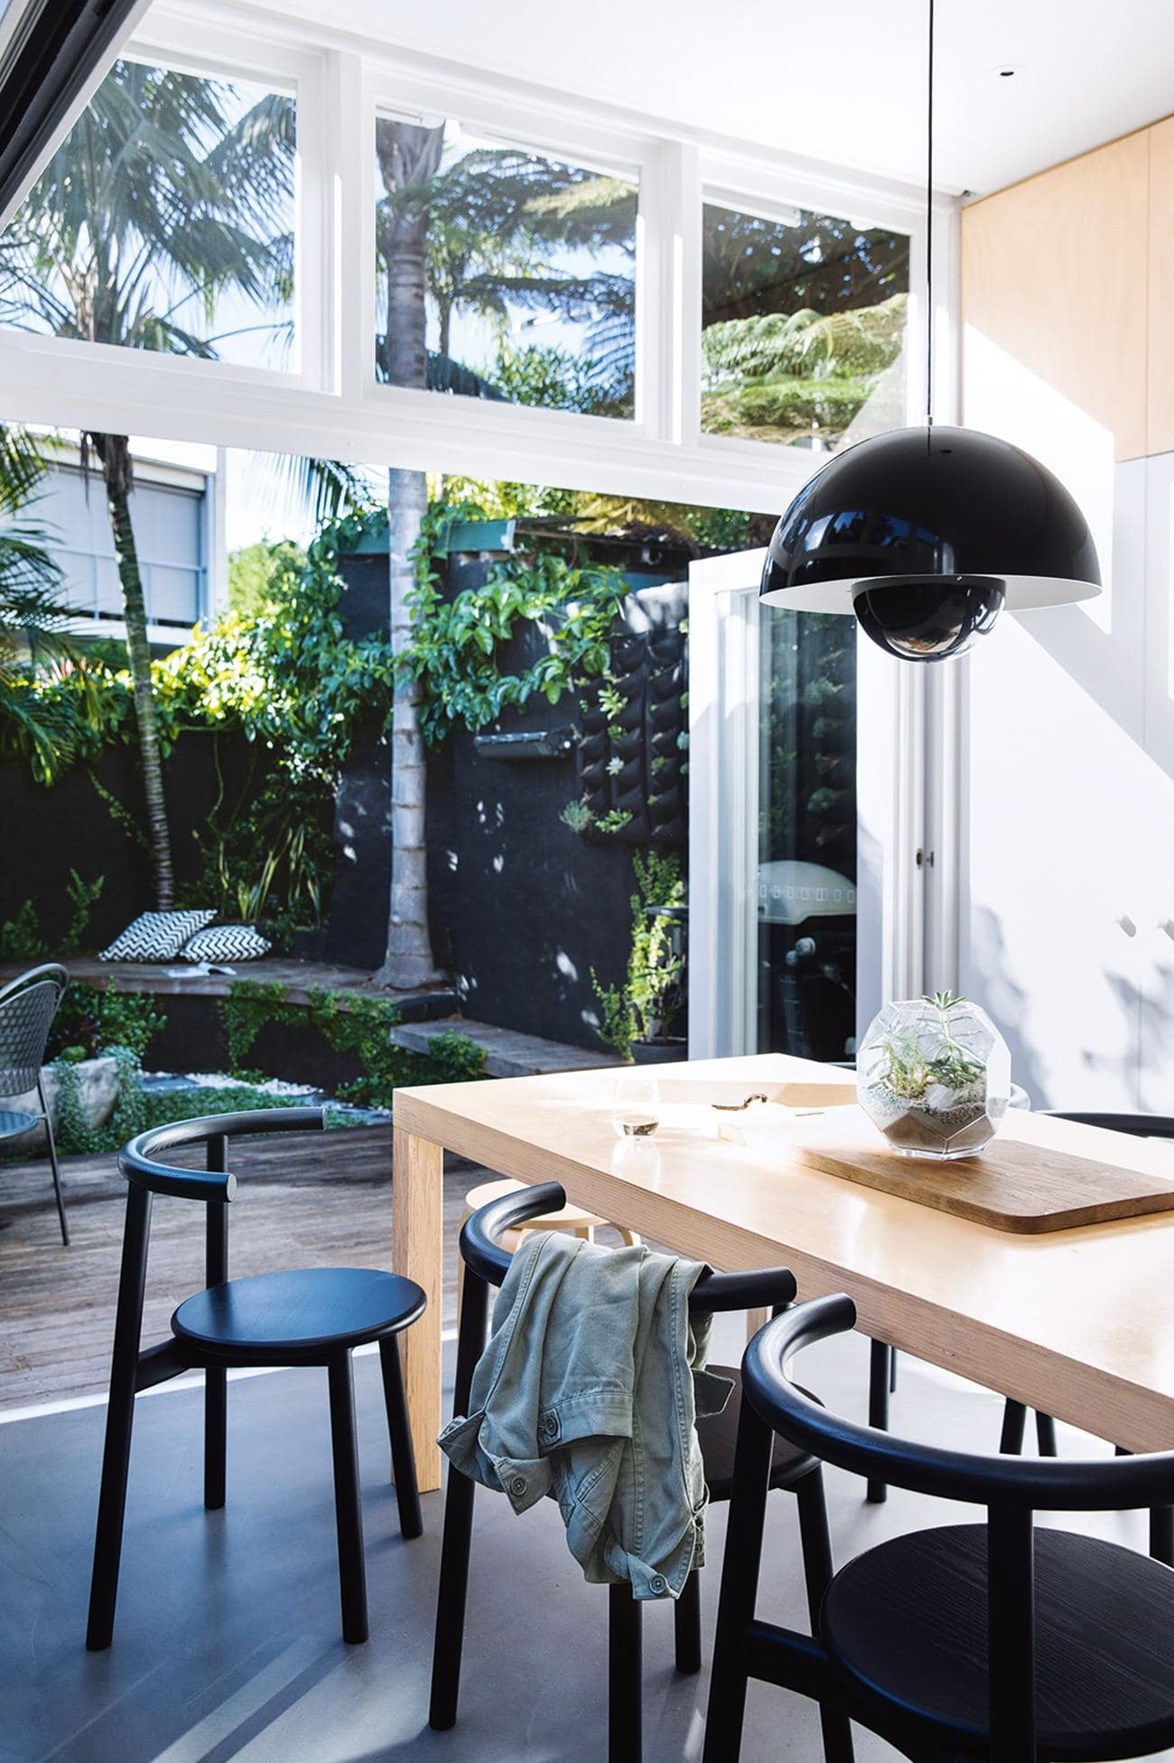 """An open-plan kitchen and dining room expands out onto a private courtyard affording the owners of this [minimalist style terrace house](https://www.homestolove.com.au/minimalist-inspiration-from-a-light-filled-terrace-18366